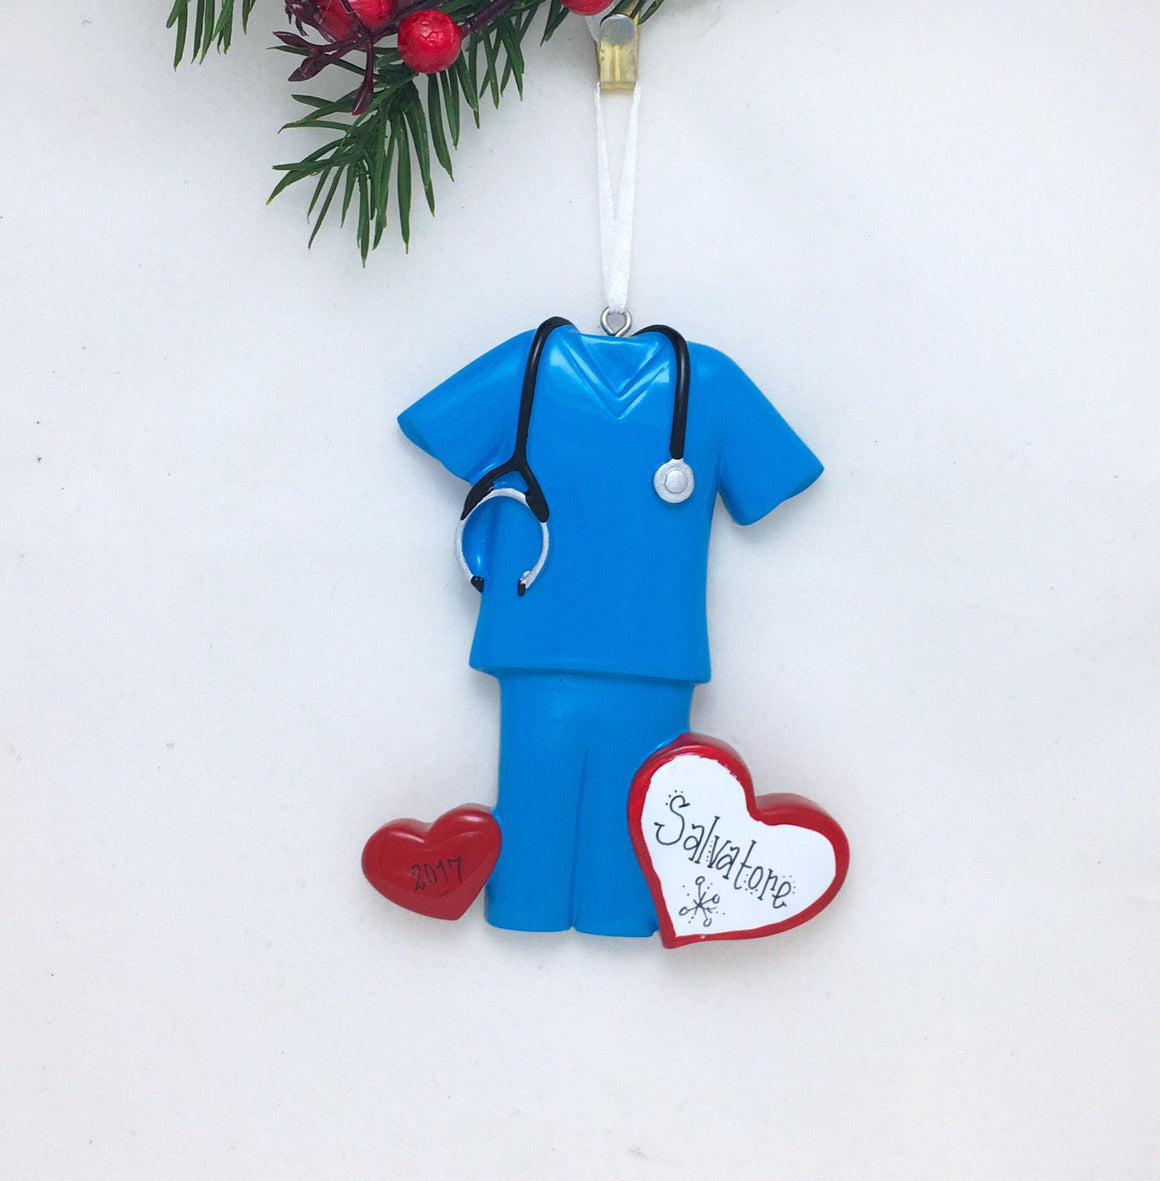 Blue Scrubs with Hearts Personalized Christmas Ornament / Nurse Ornament / Doctor Ornament / Hand Personalized